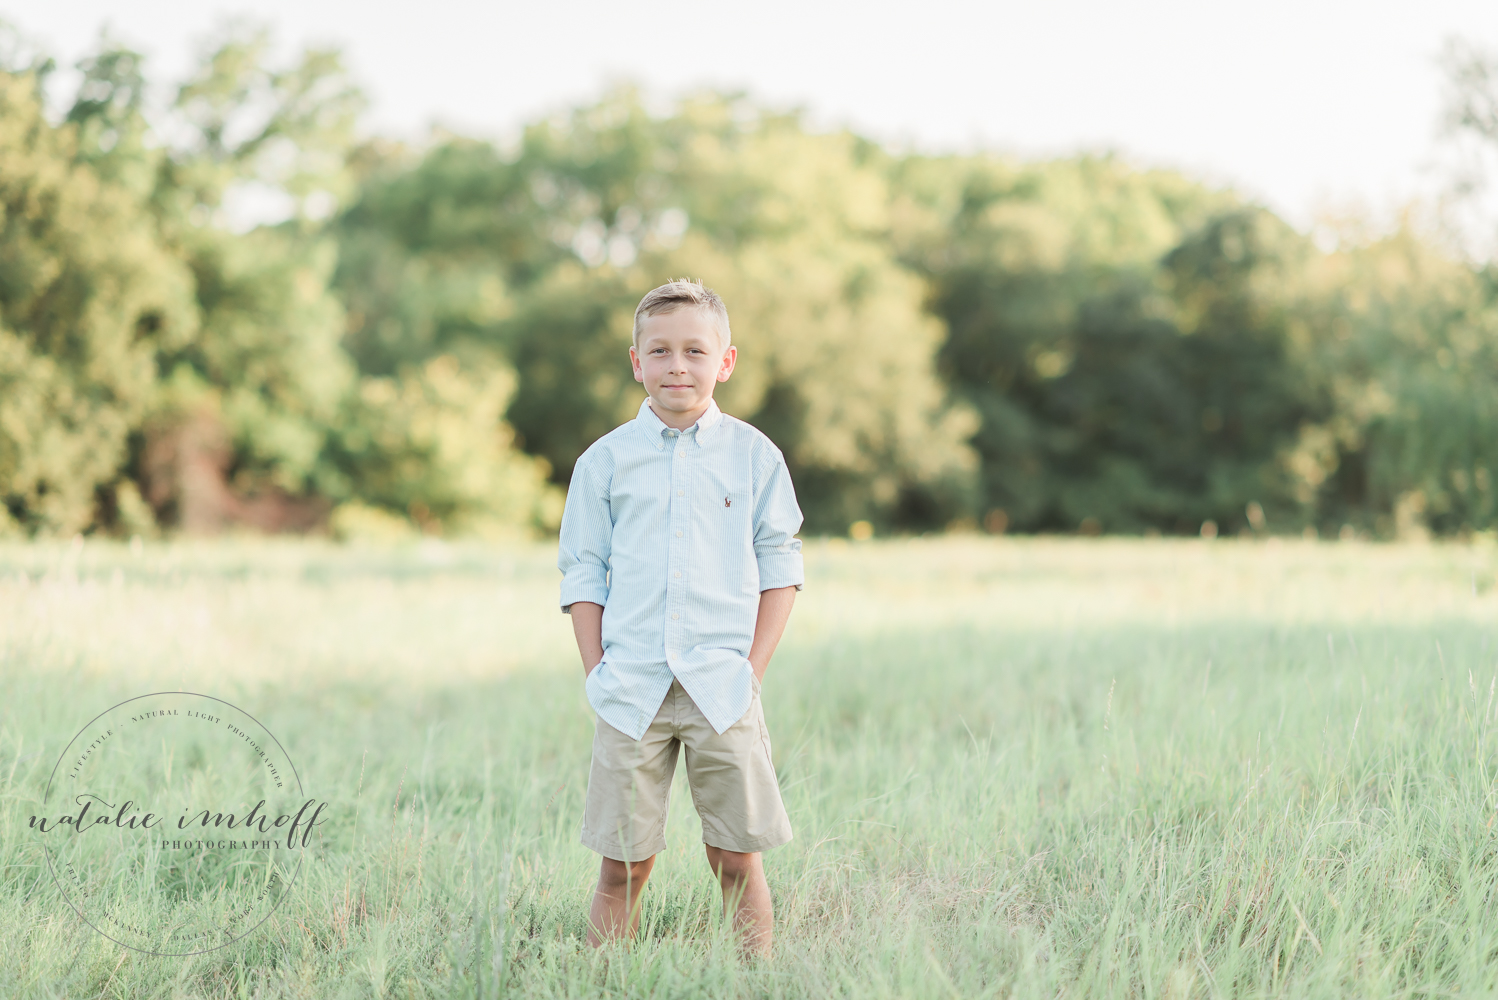 Natalie Imhoff Photography - Frisco Family Photography - Family Photos - Frisco Texas  - 2017 - Web-5.JPG